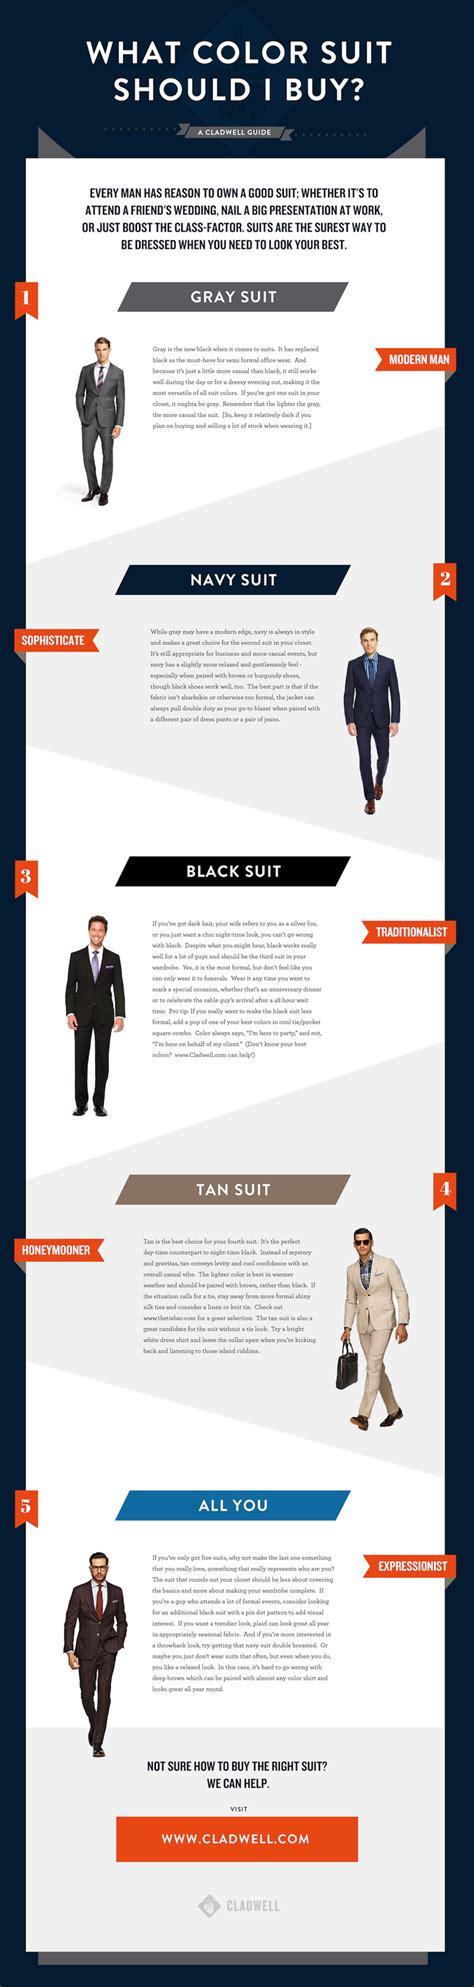 What Color Suit Should I Buy? Men's Suit Coloring Guide. Country Kitchen Accessories Uk. Kidkraft Retro Red Kitchen. Country Kitchen Magazine Recipes. Modern Colours For Kitchens. Modern Kids Kitchen. Country Outdoor Kitchen Ideas. Country Kitchen Barnesville Ga. Country Kitchen Island